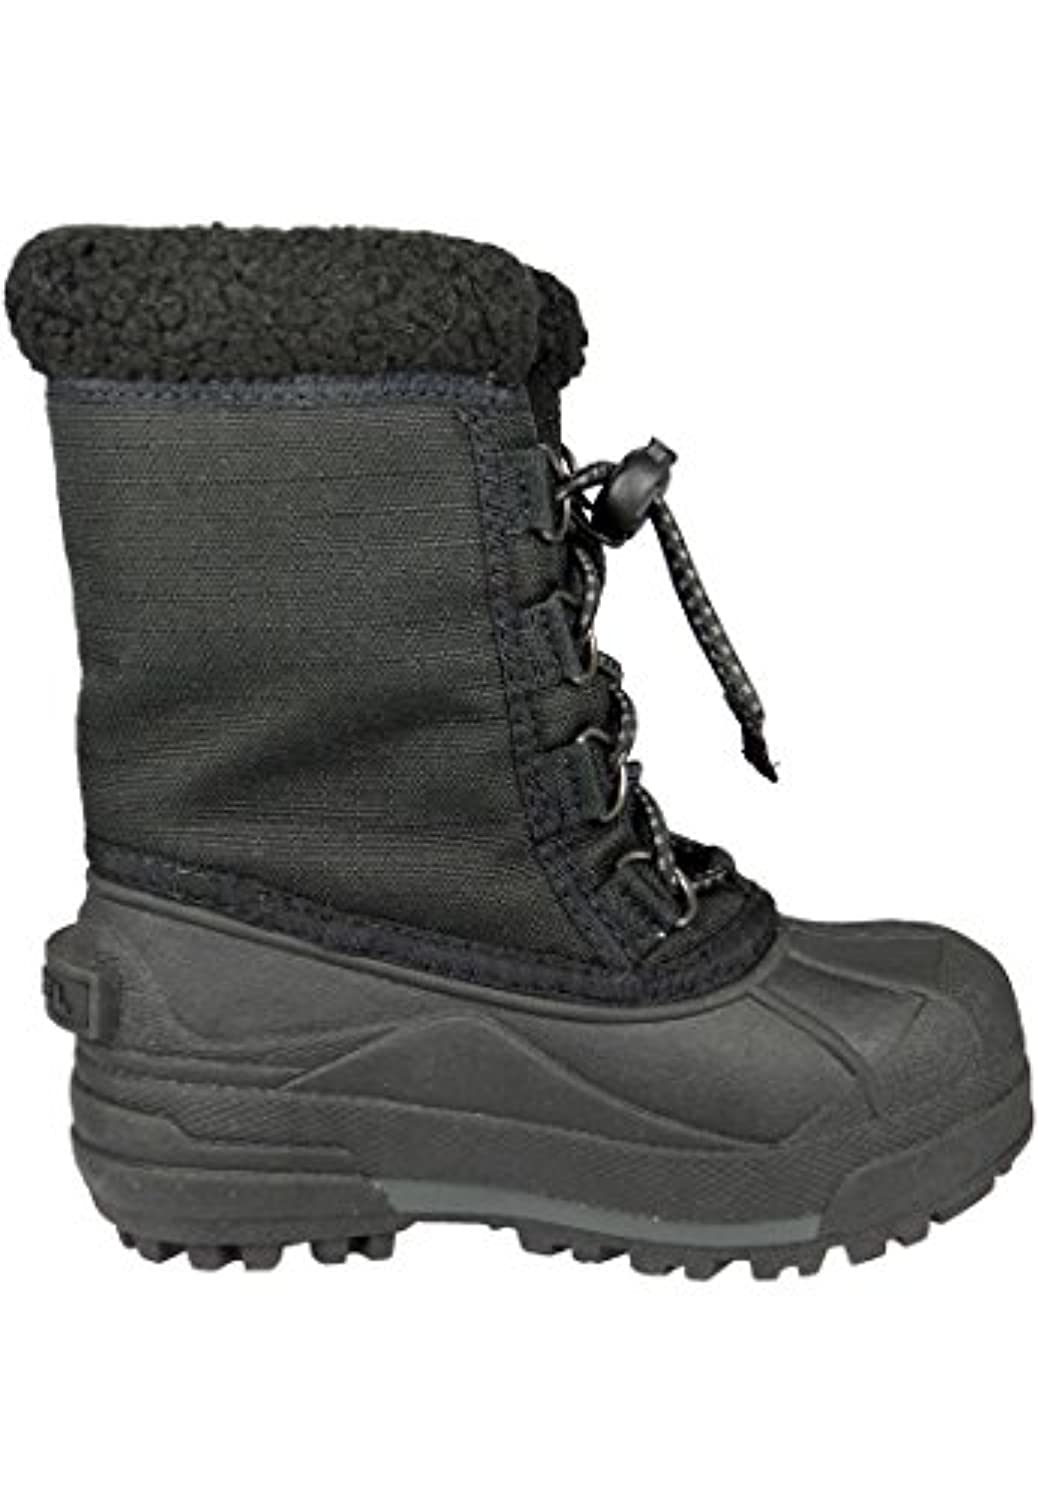 Sorel Kids Winter Boots Youth Cumberland II Lined NY1791 Black Black, Sorel Schuhe Kids:25